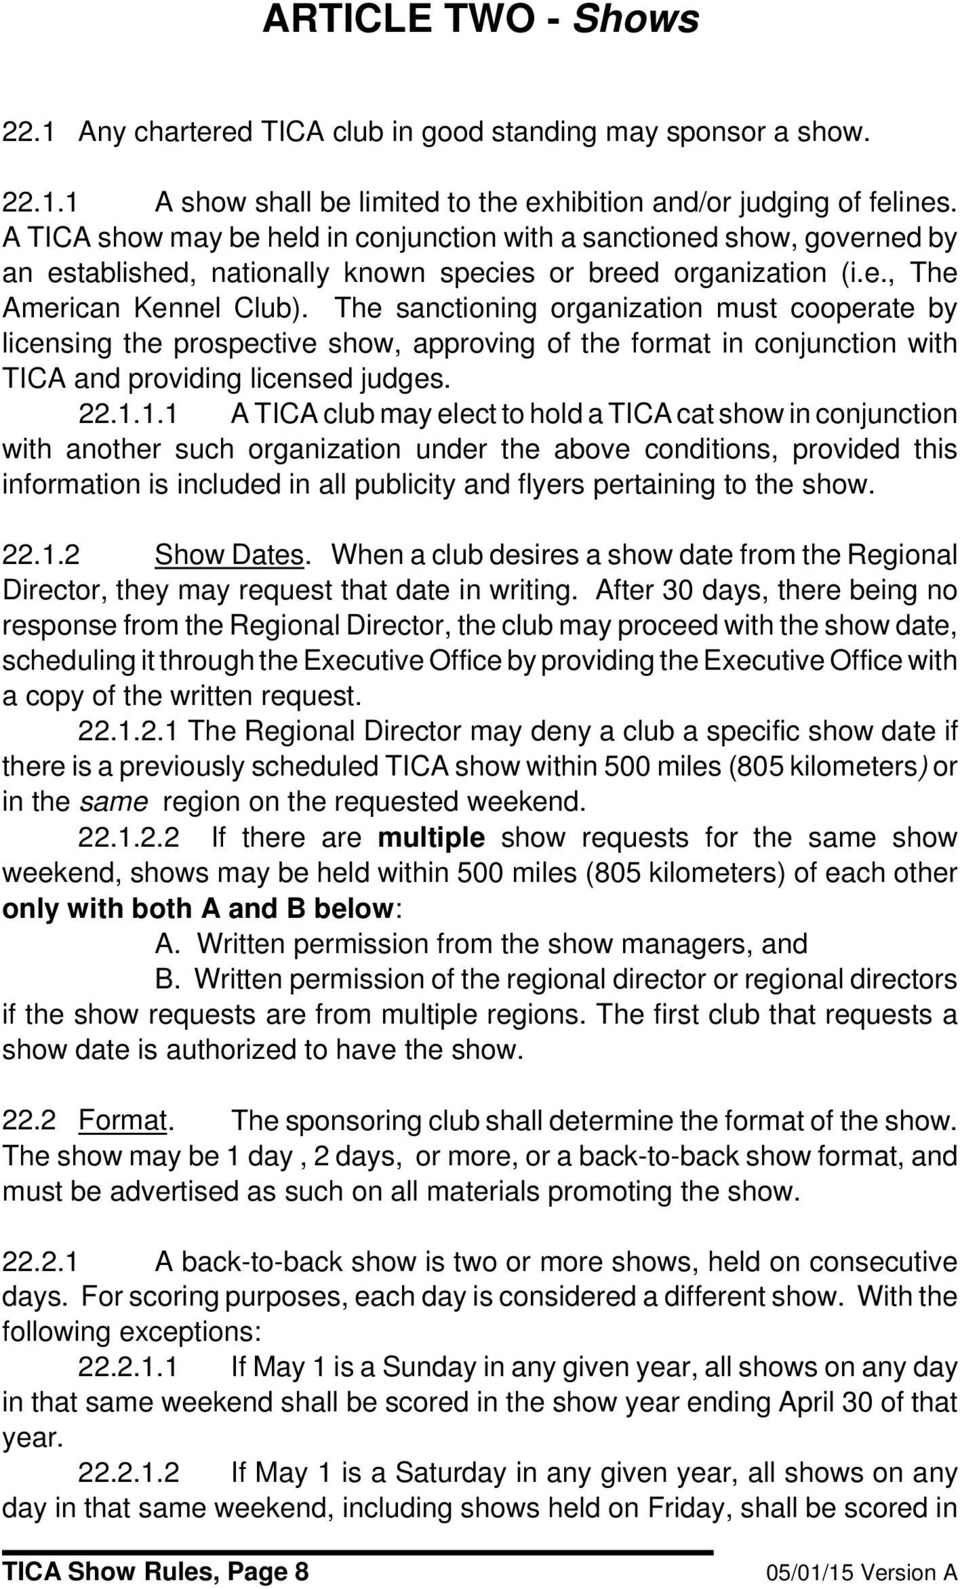 The sanctioning organization must cooperate by licensing the prospective show, approving of the format in conjunction with TICA and providing licensed judges. 22.1.